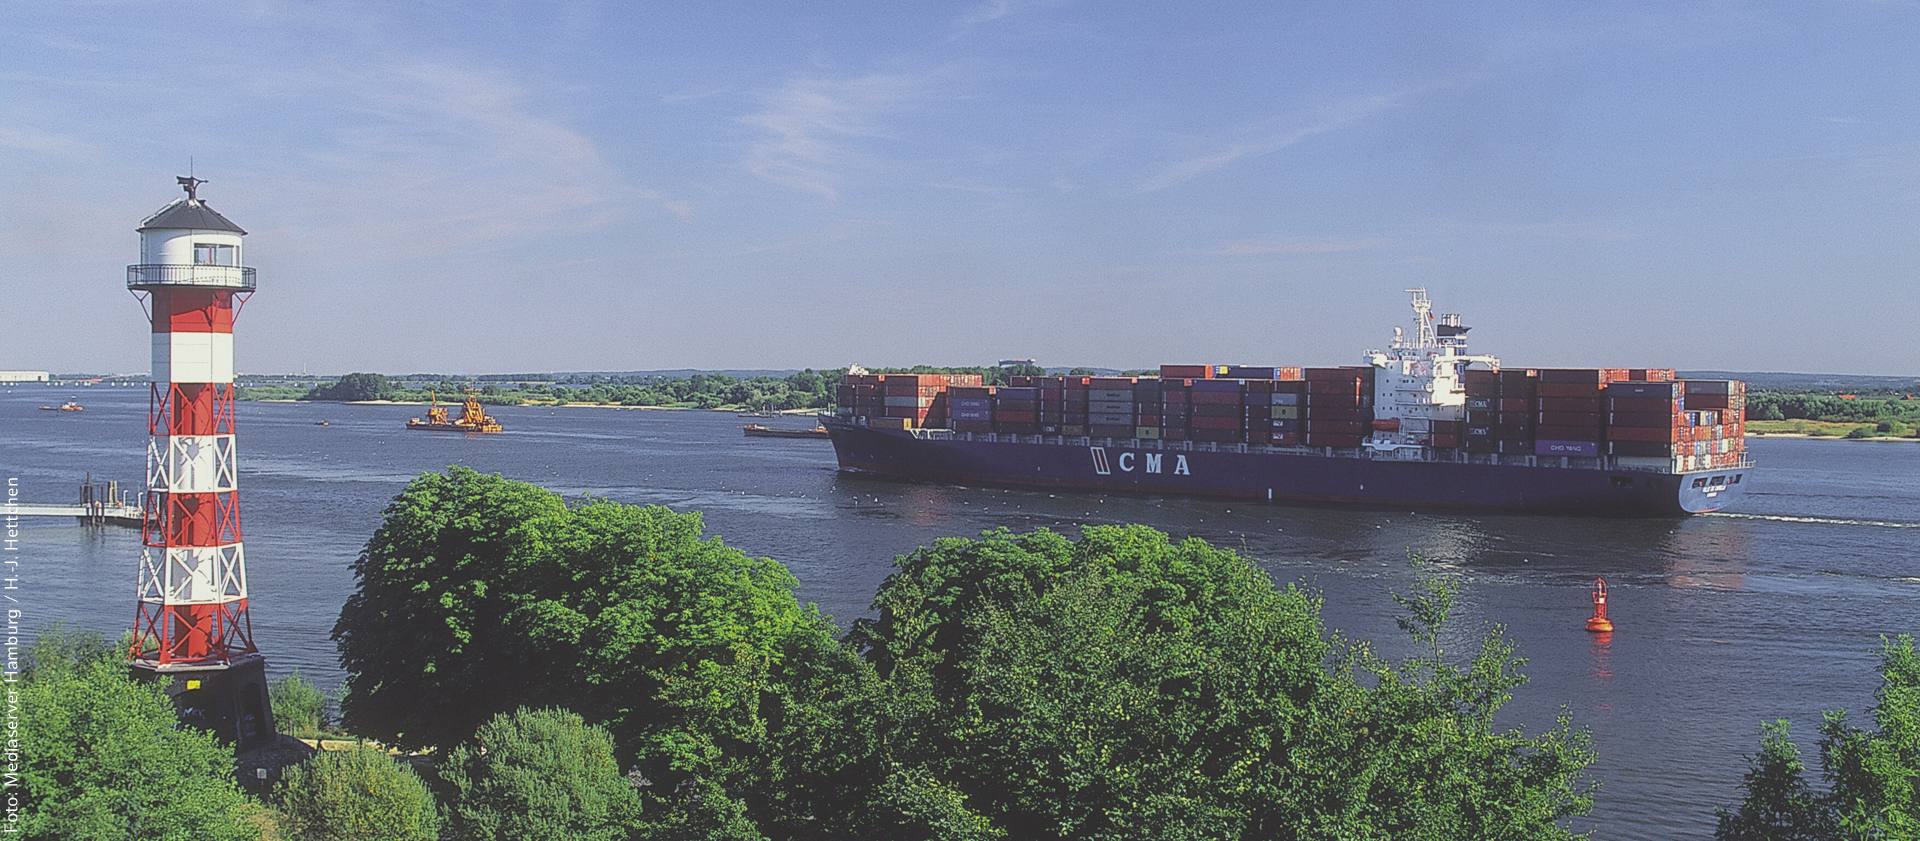 210225_Header_HOME_Elbe_Containerschiff